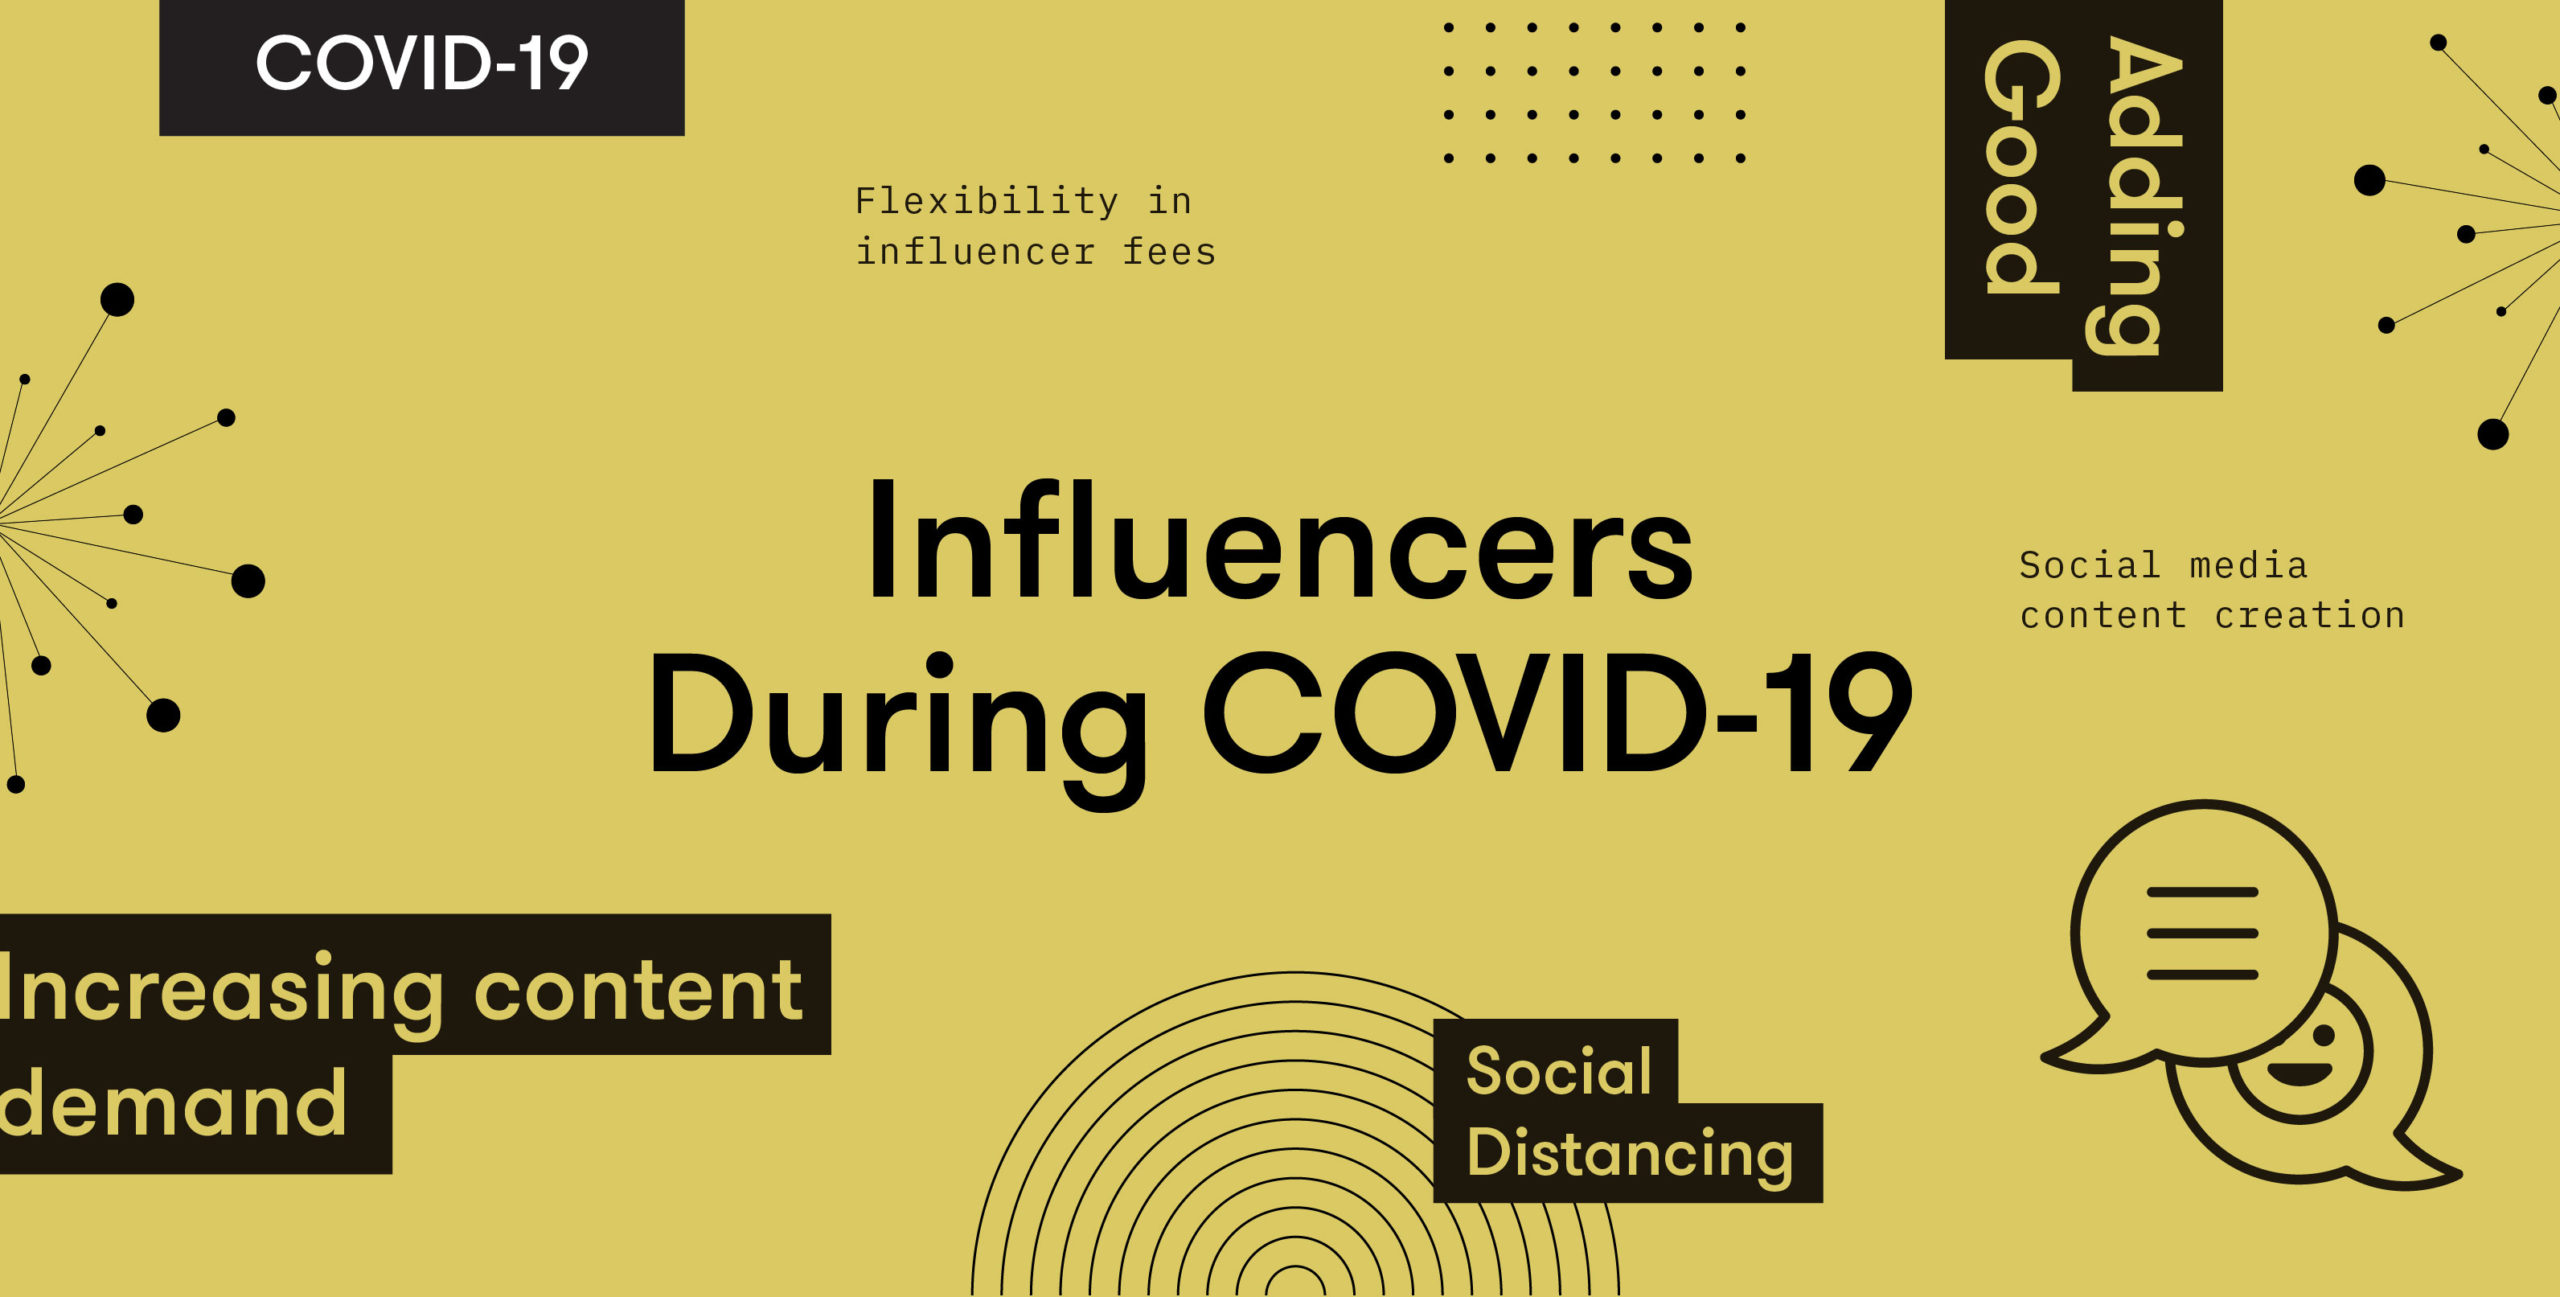 On the power of influencers and meaningful moments during quarantine